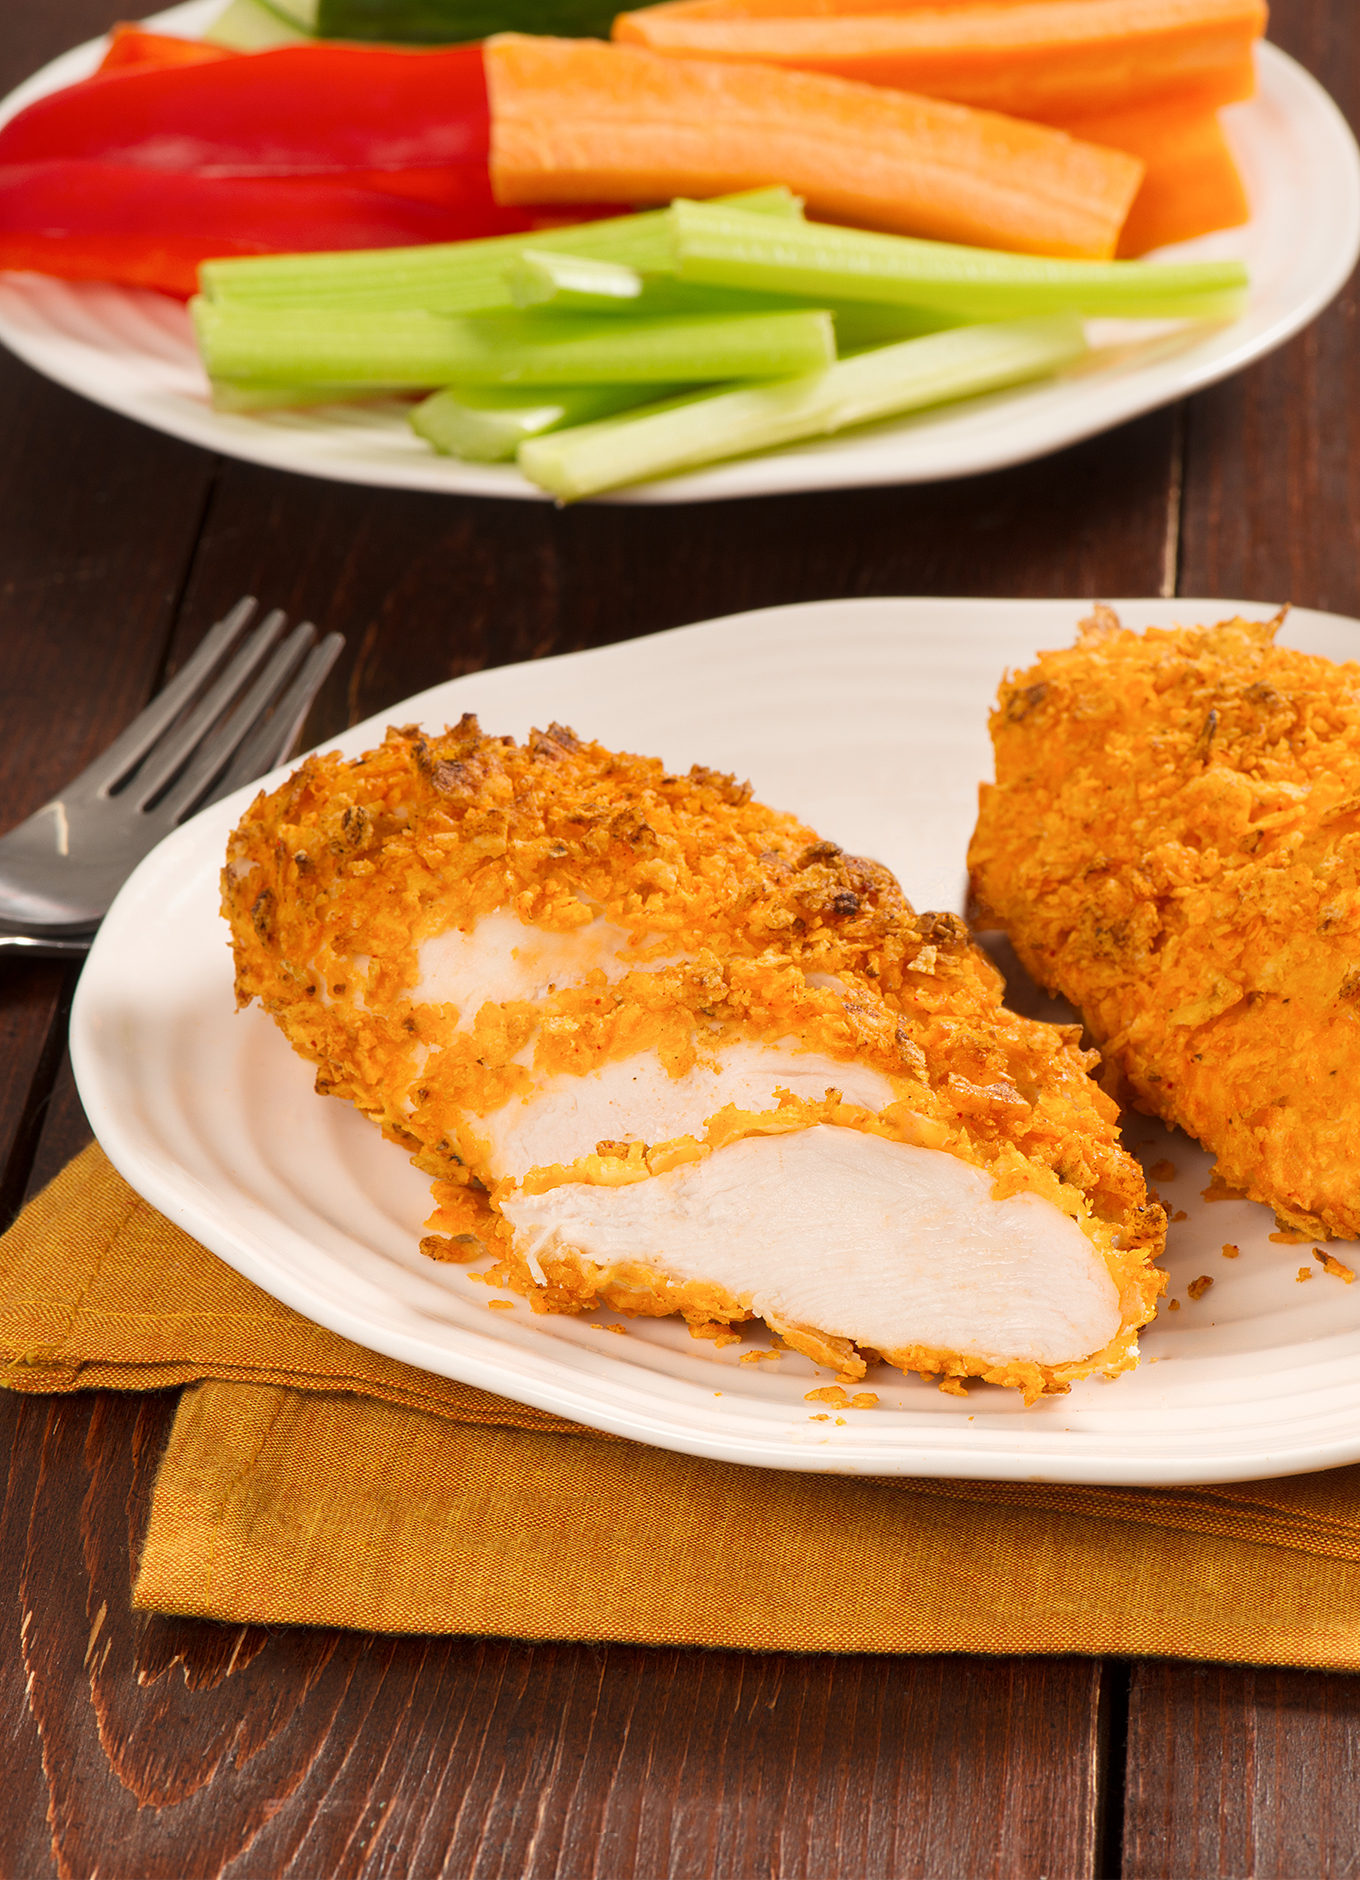 Chicken breasts coated with a crust made of nacho cheese flavoured chips on a table set for a meal.